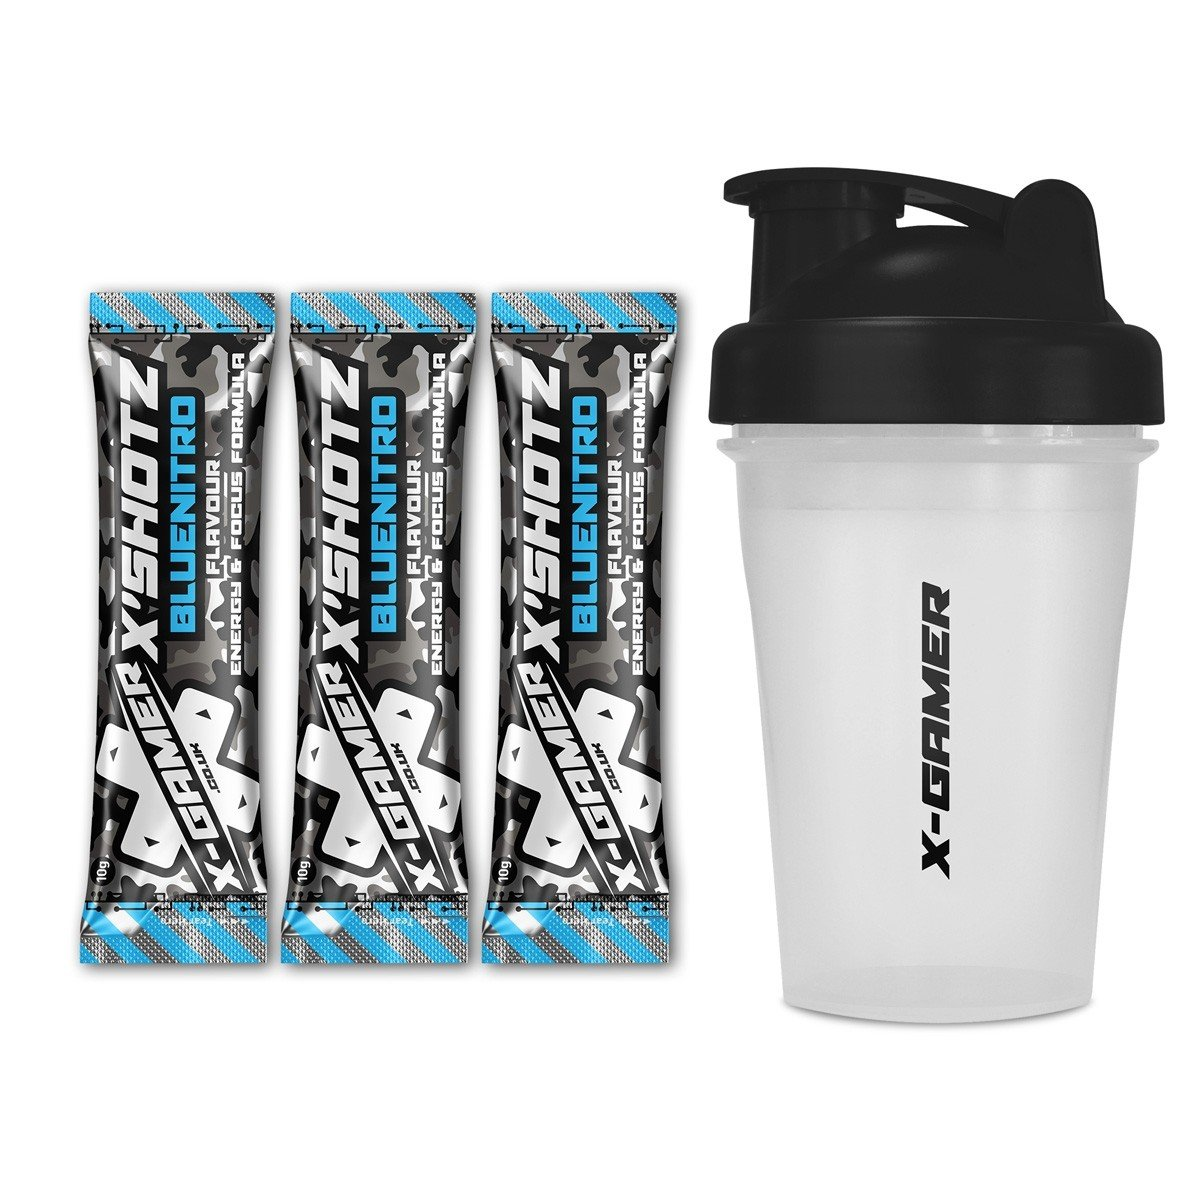 X-Gamer | X-Shotz Blue Nitro (3 Pack) with X-Shakez Shaker | Blue Nitro Flavored Focus and Energy-Drink Beverage for Gamers and E-Sports Enthusiasts | 27 Multi-Vitamin Complex | Zero Added Sugar